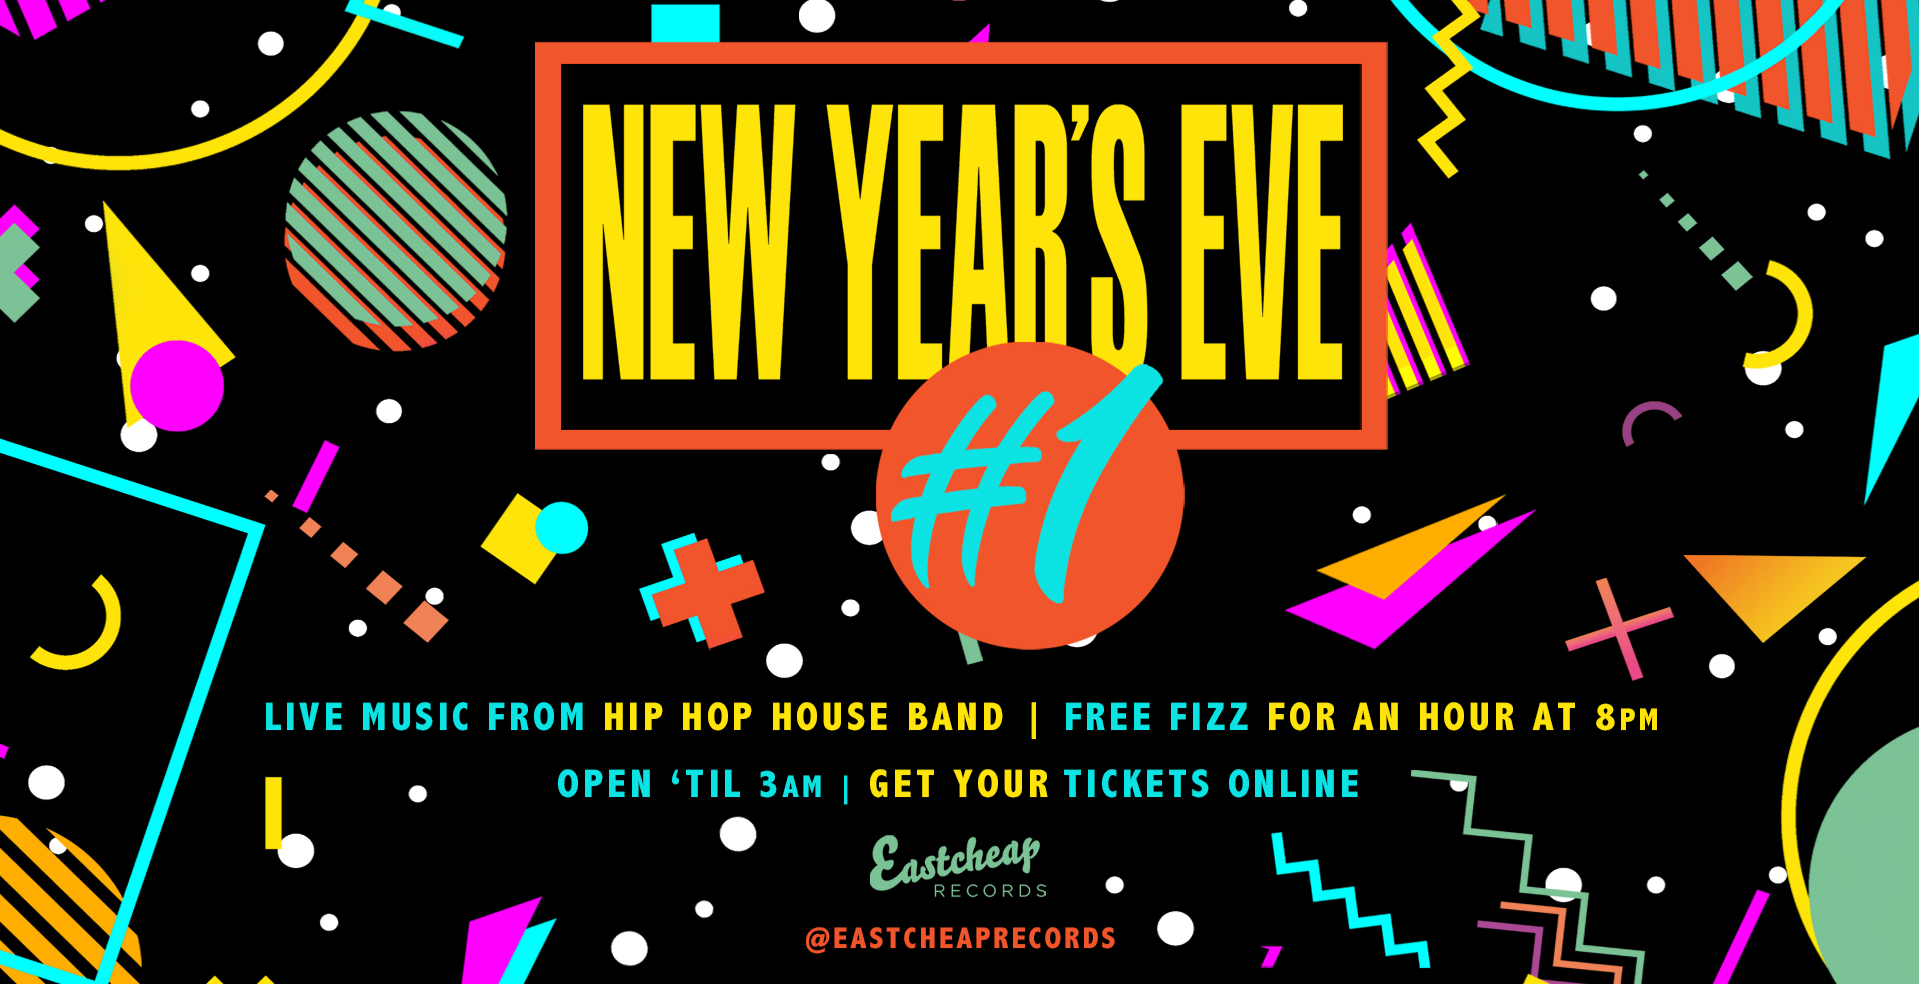 New Year's Eve #1 feat. Hip Hop House Band